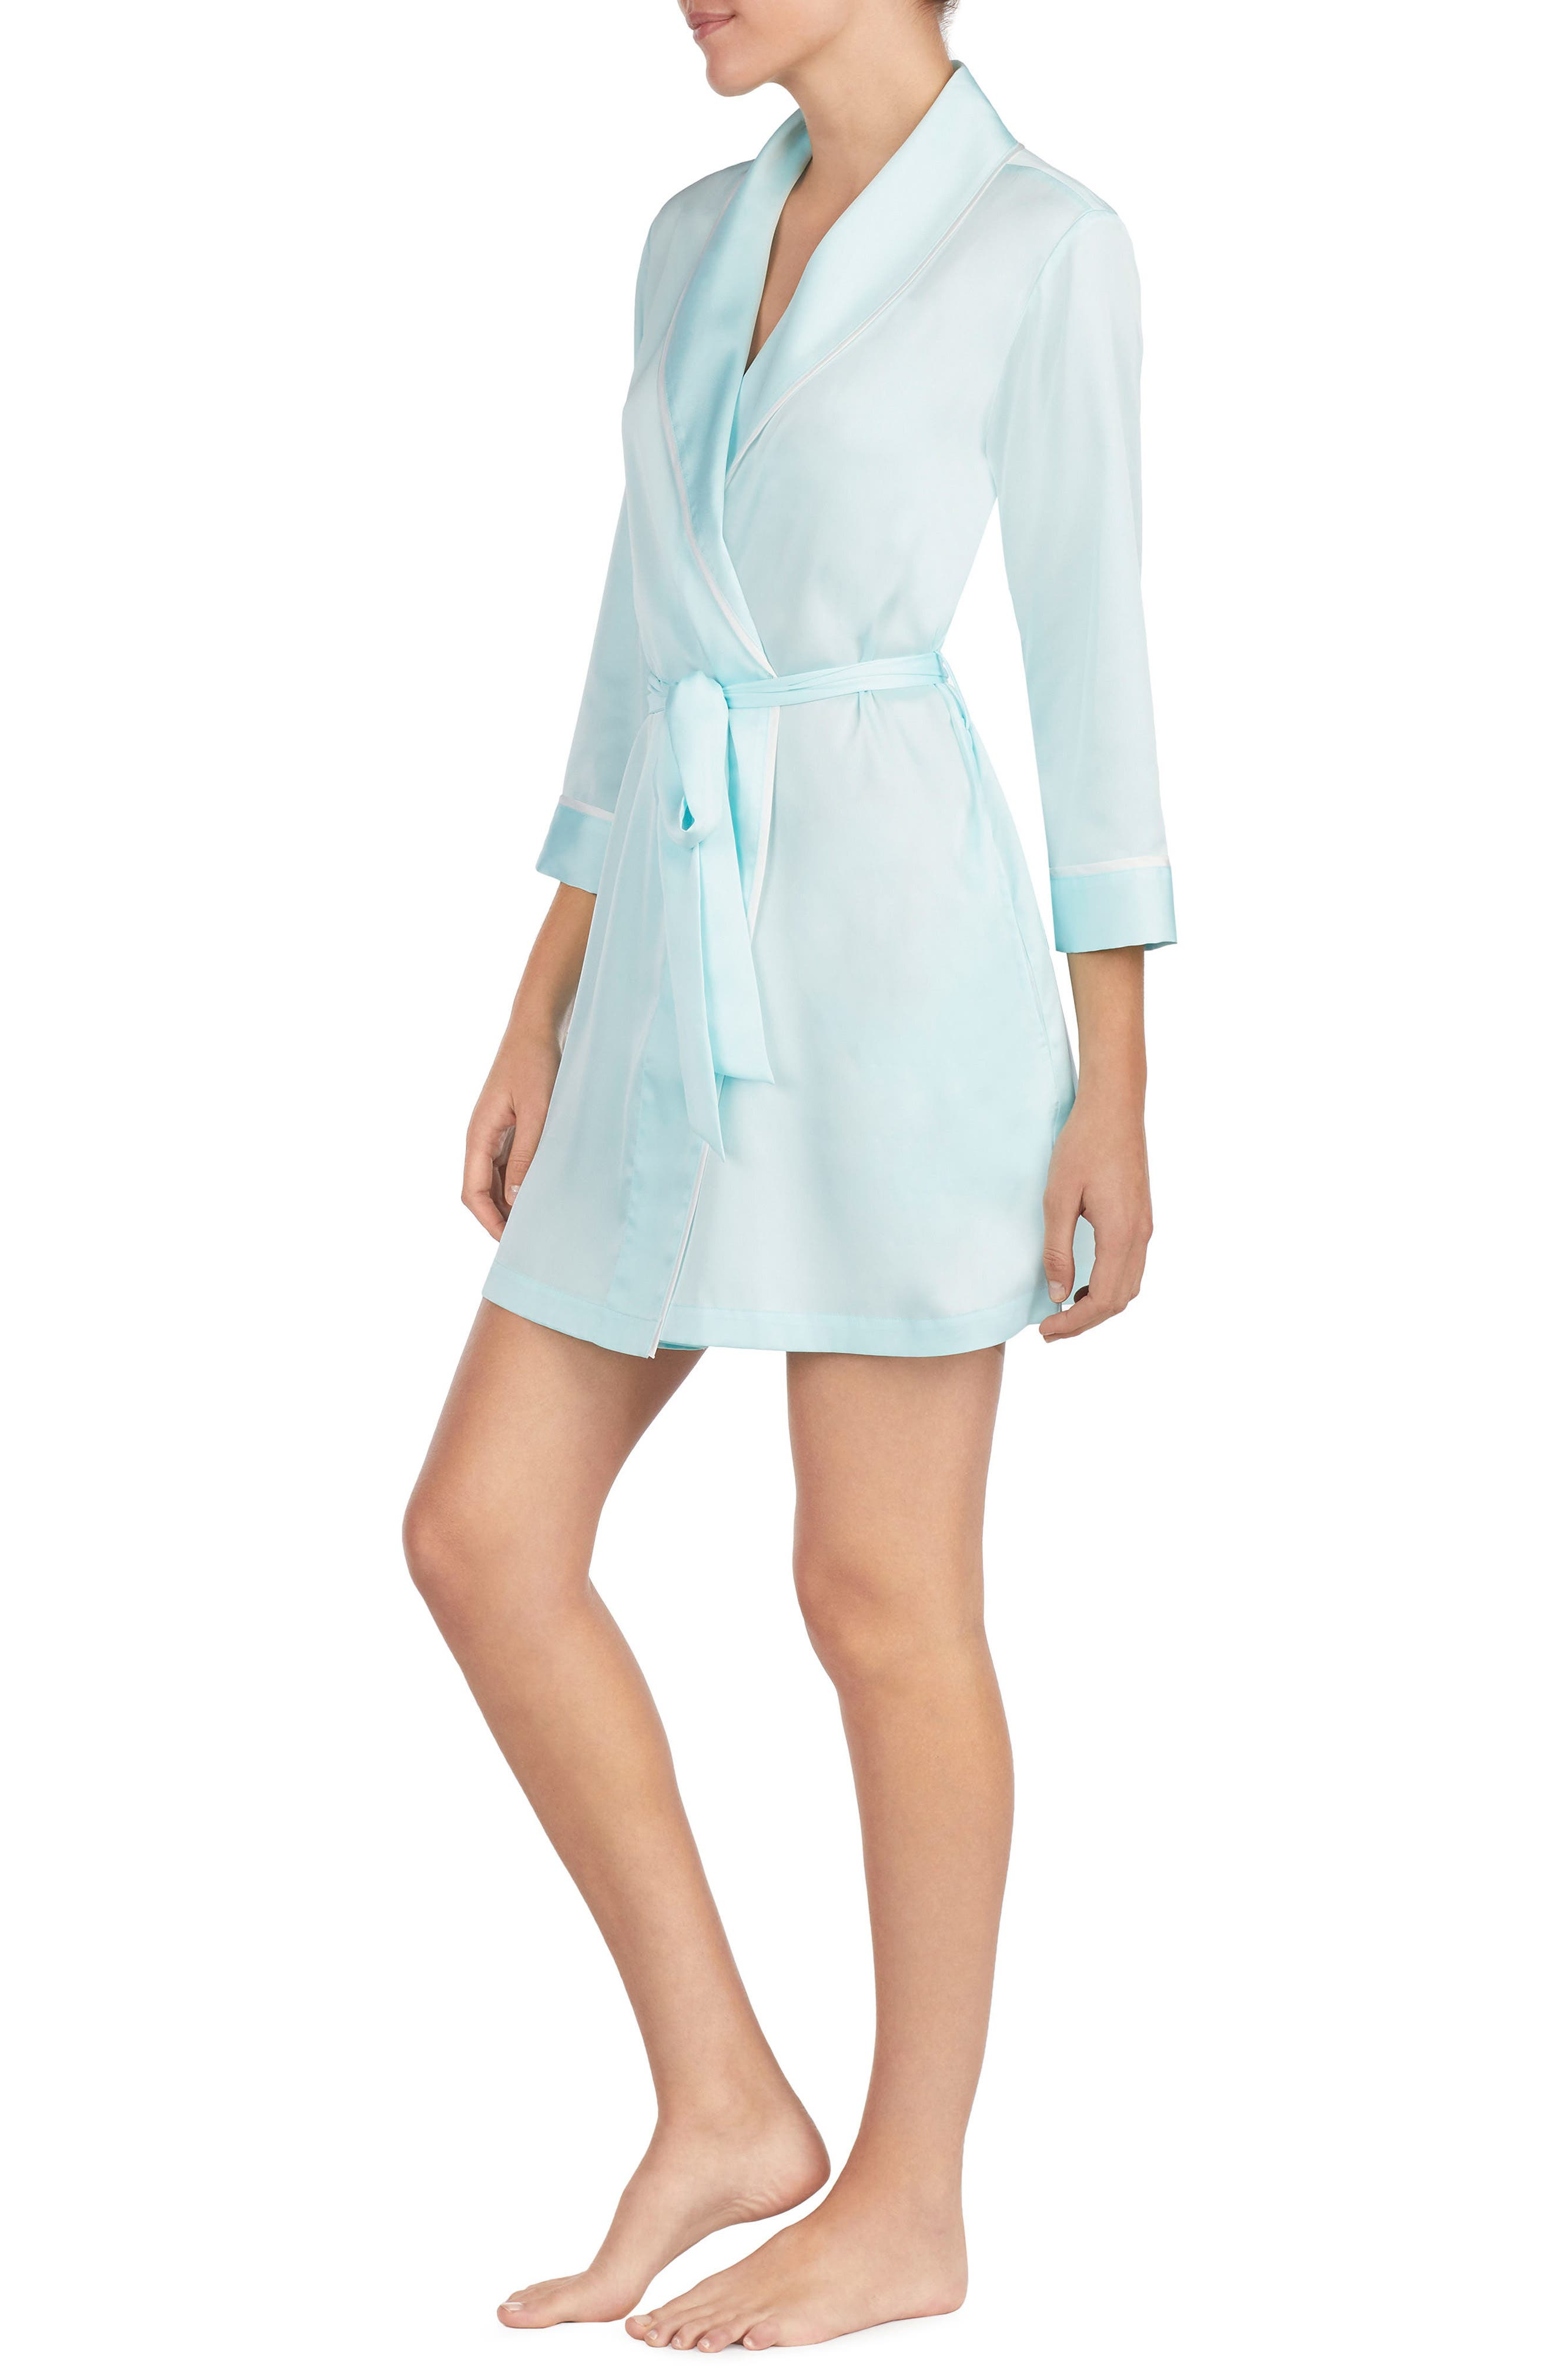 happily ever after charmeuse short robe,                             Alternate thumbnail 3, color,                             405